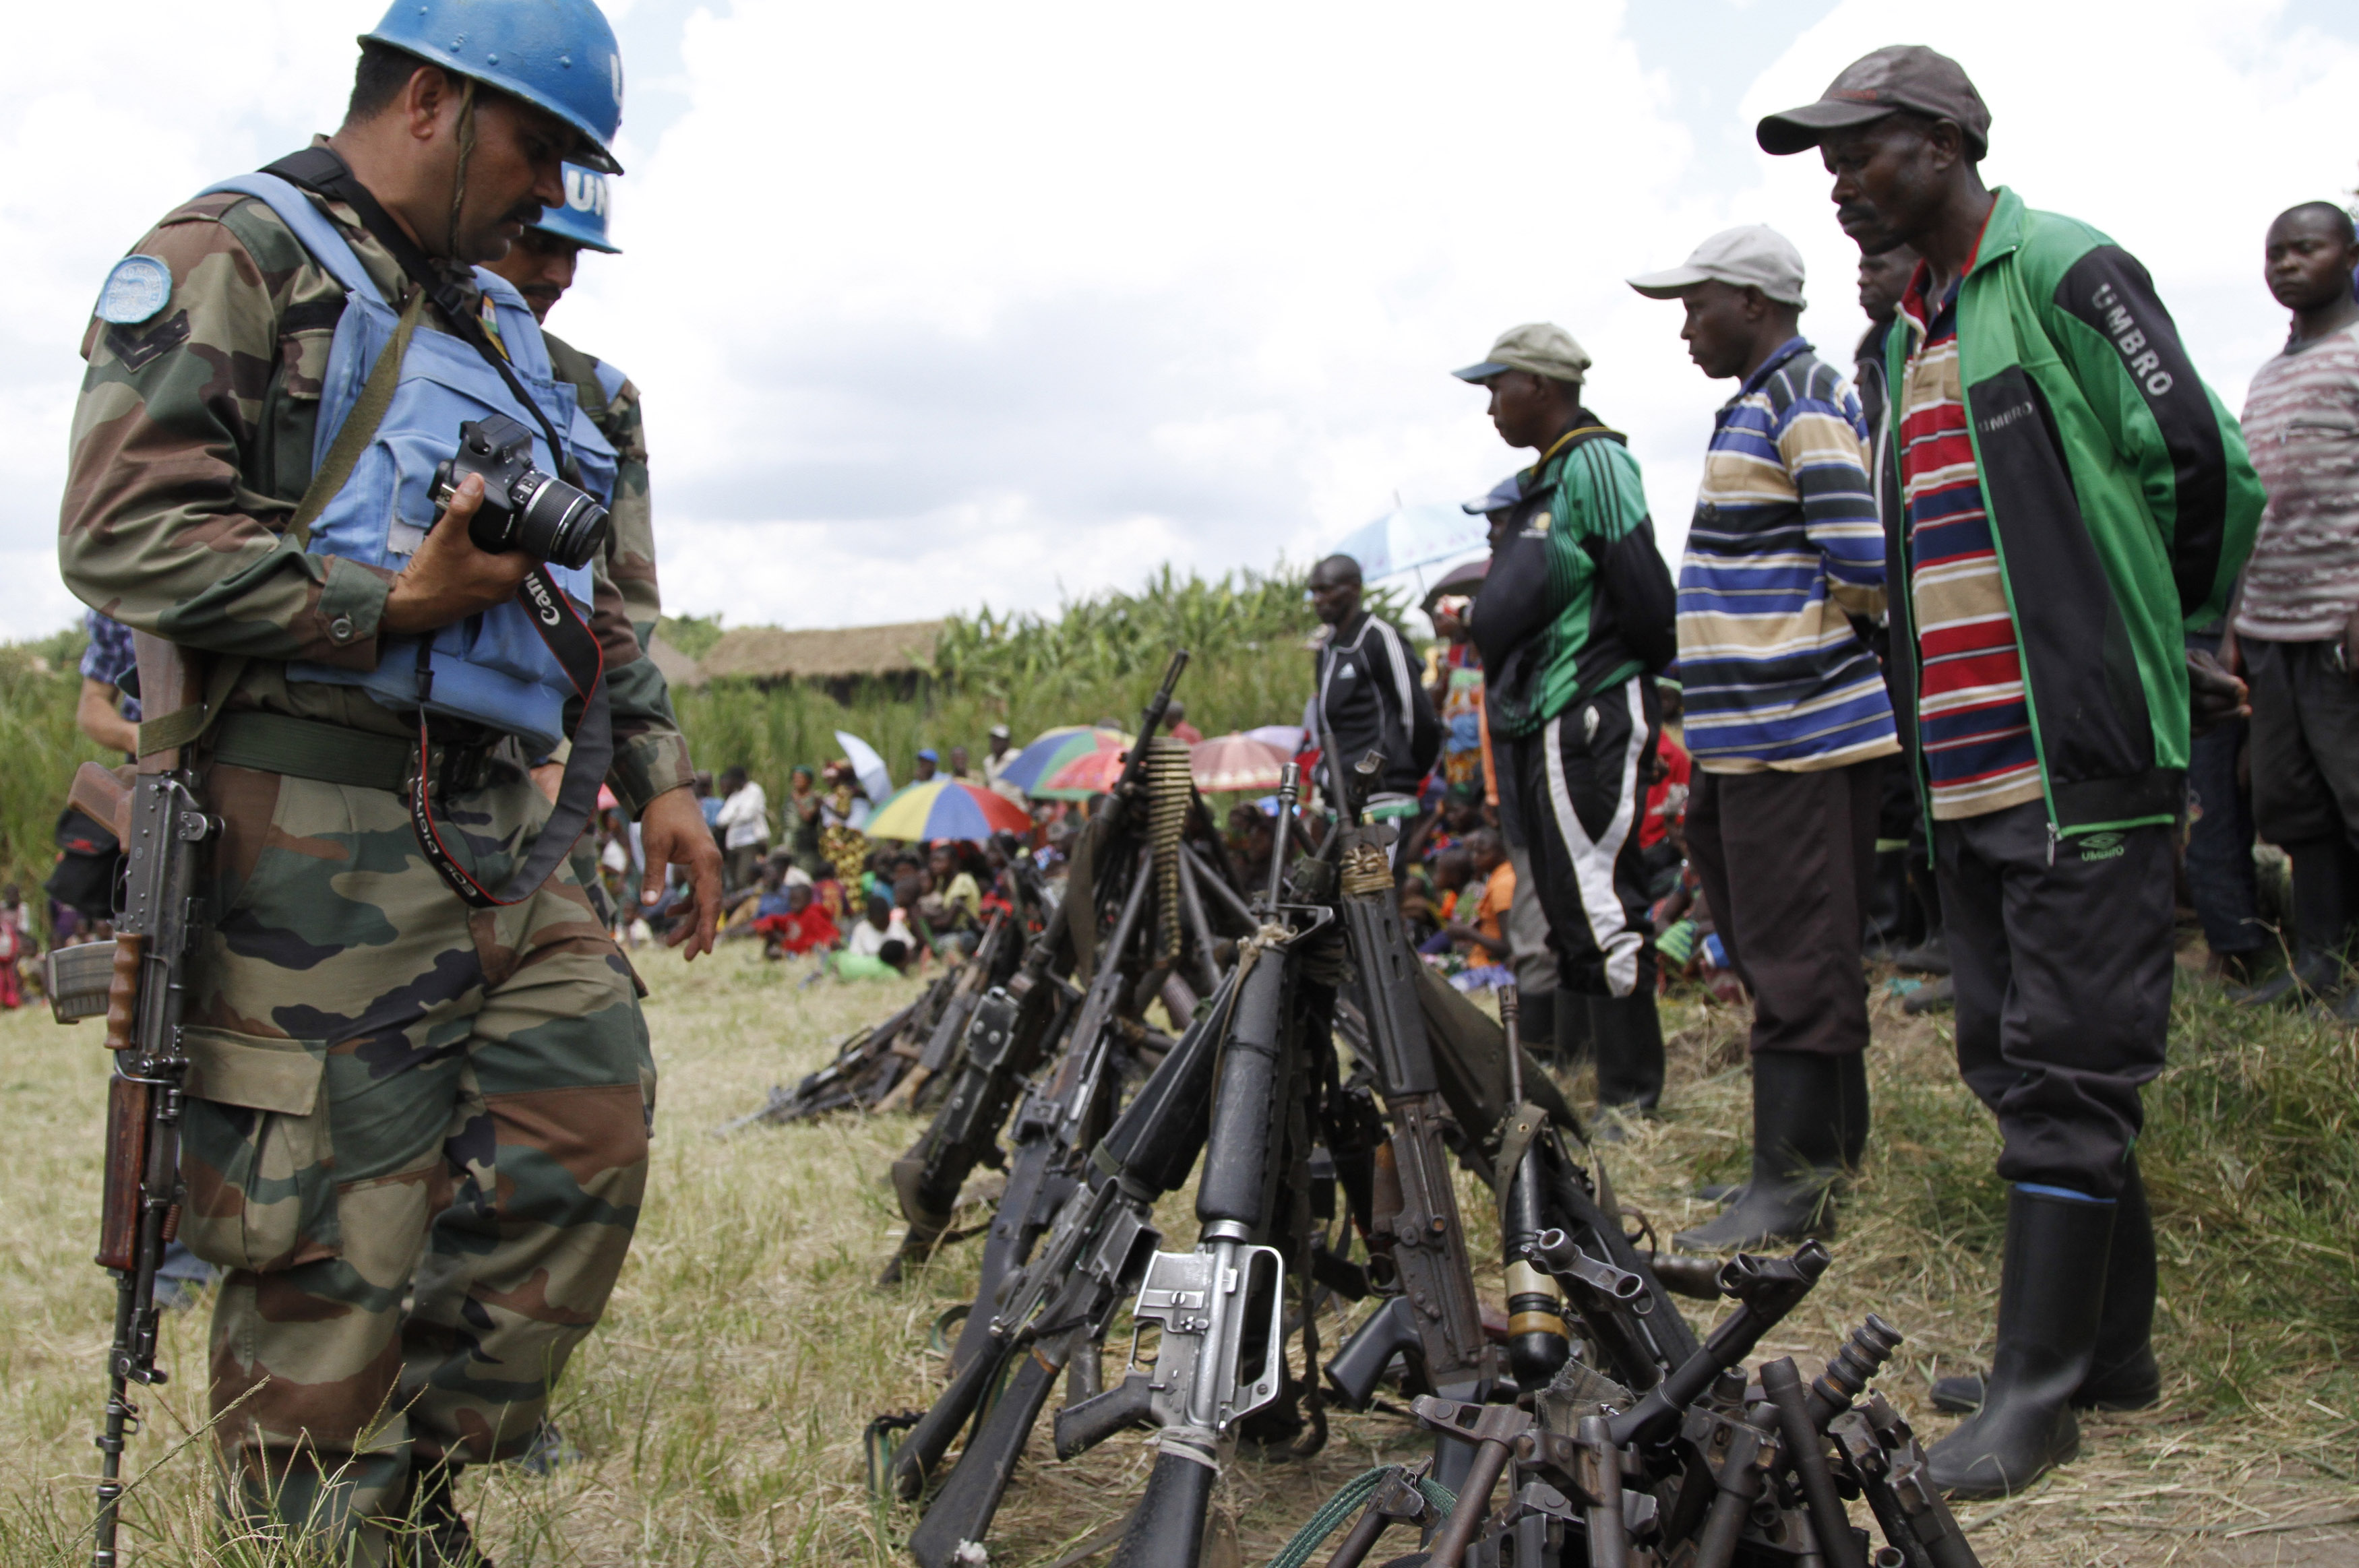 U.N. peacekeepers record details of weapons recovered from the Democratic Forces for the Liberation of Rwanda militants after their surrender in Kateku, a small town in the eastern region of the Democratic Republic of Congo on May 30, 2014.